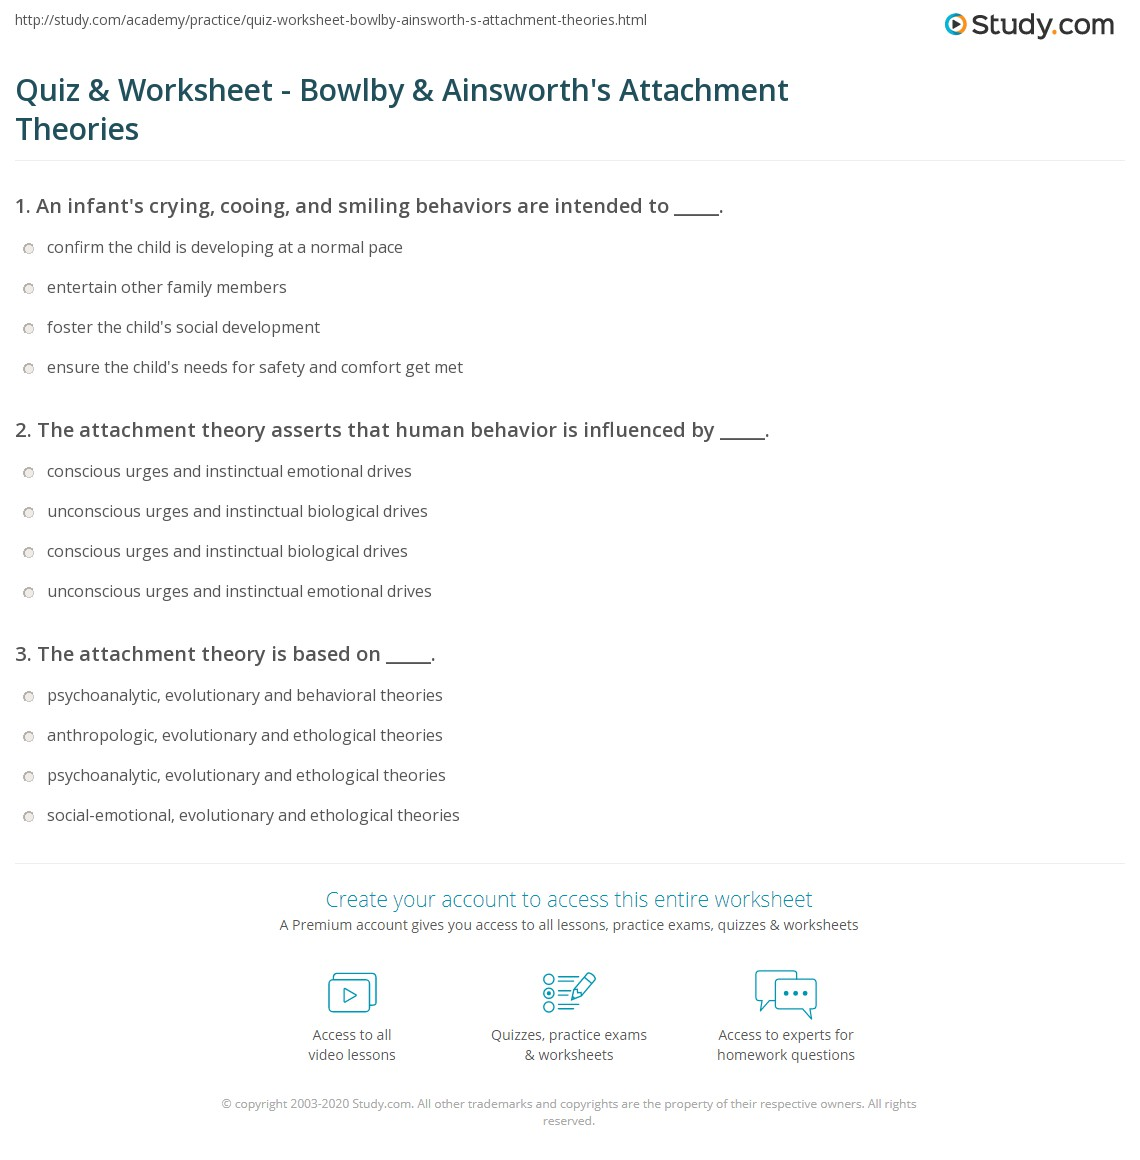 quiz worksheet bowlby ainsworth s attachment theories  print attachment theory definition criticism of bowlby ainsworth s theories worksheet